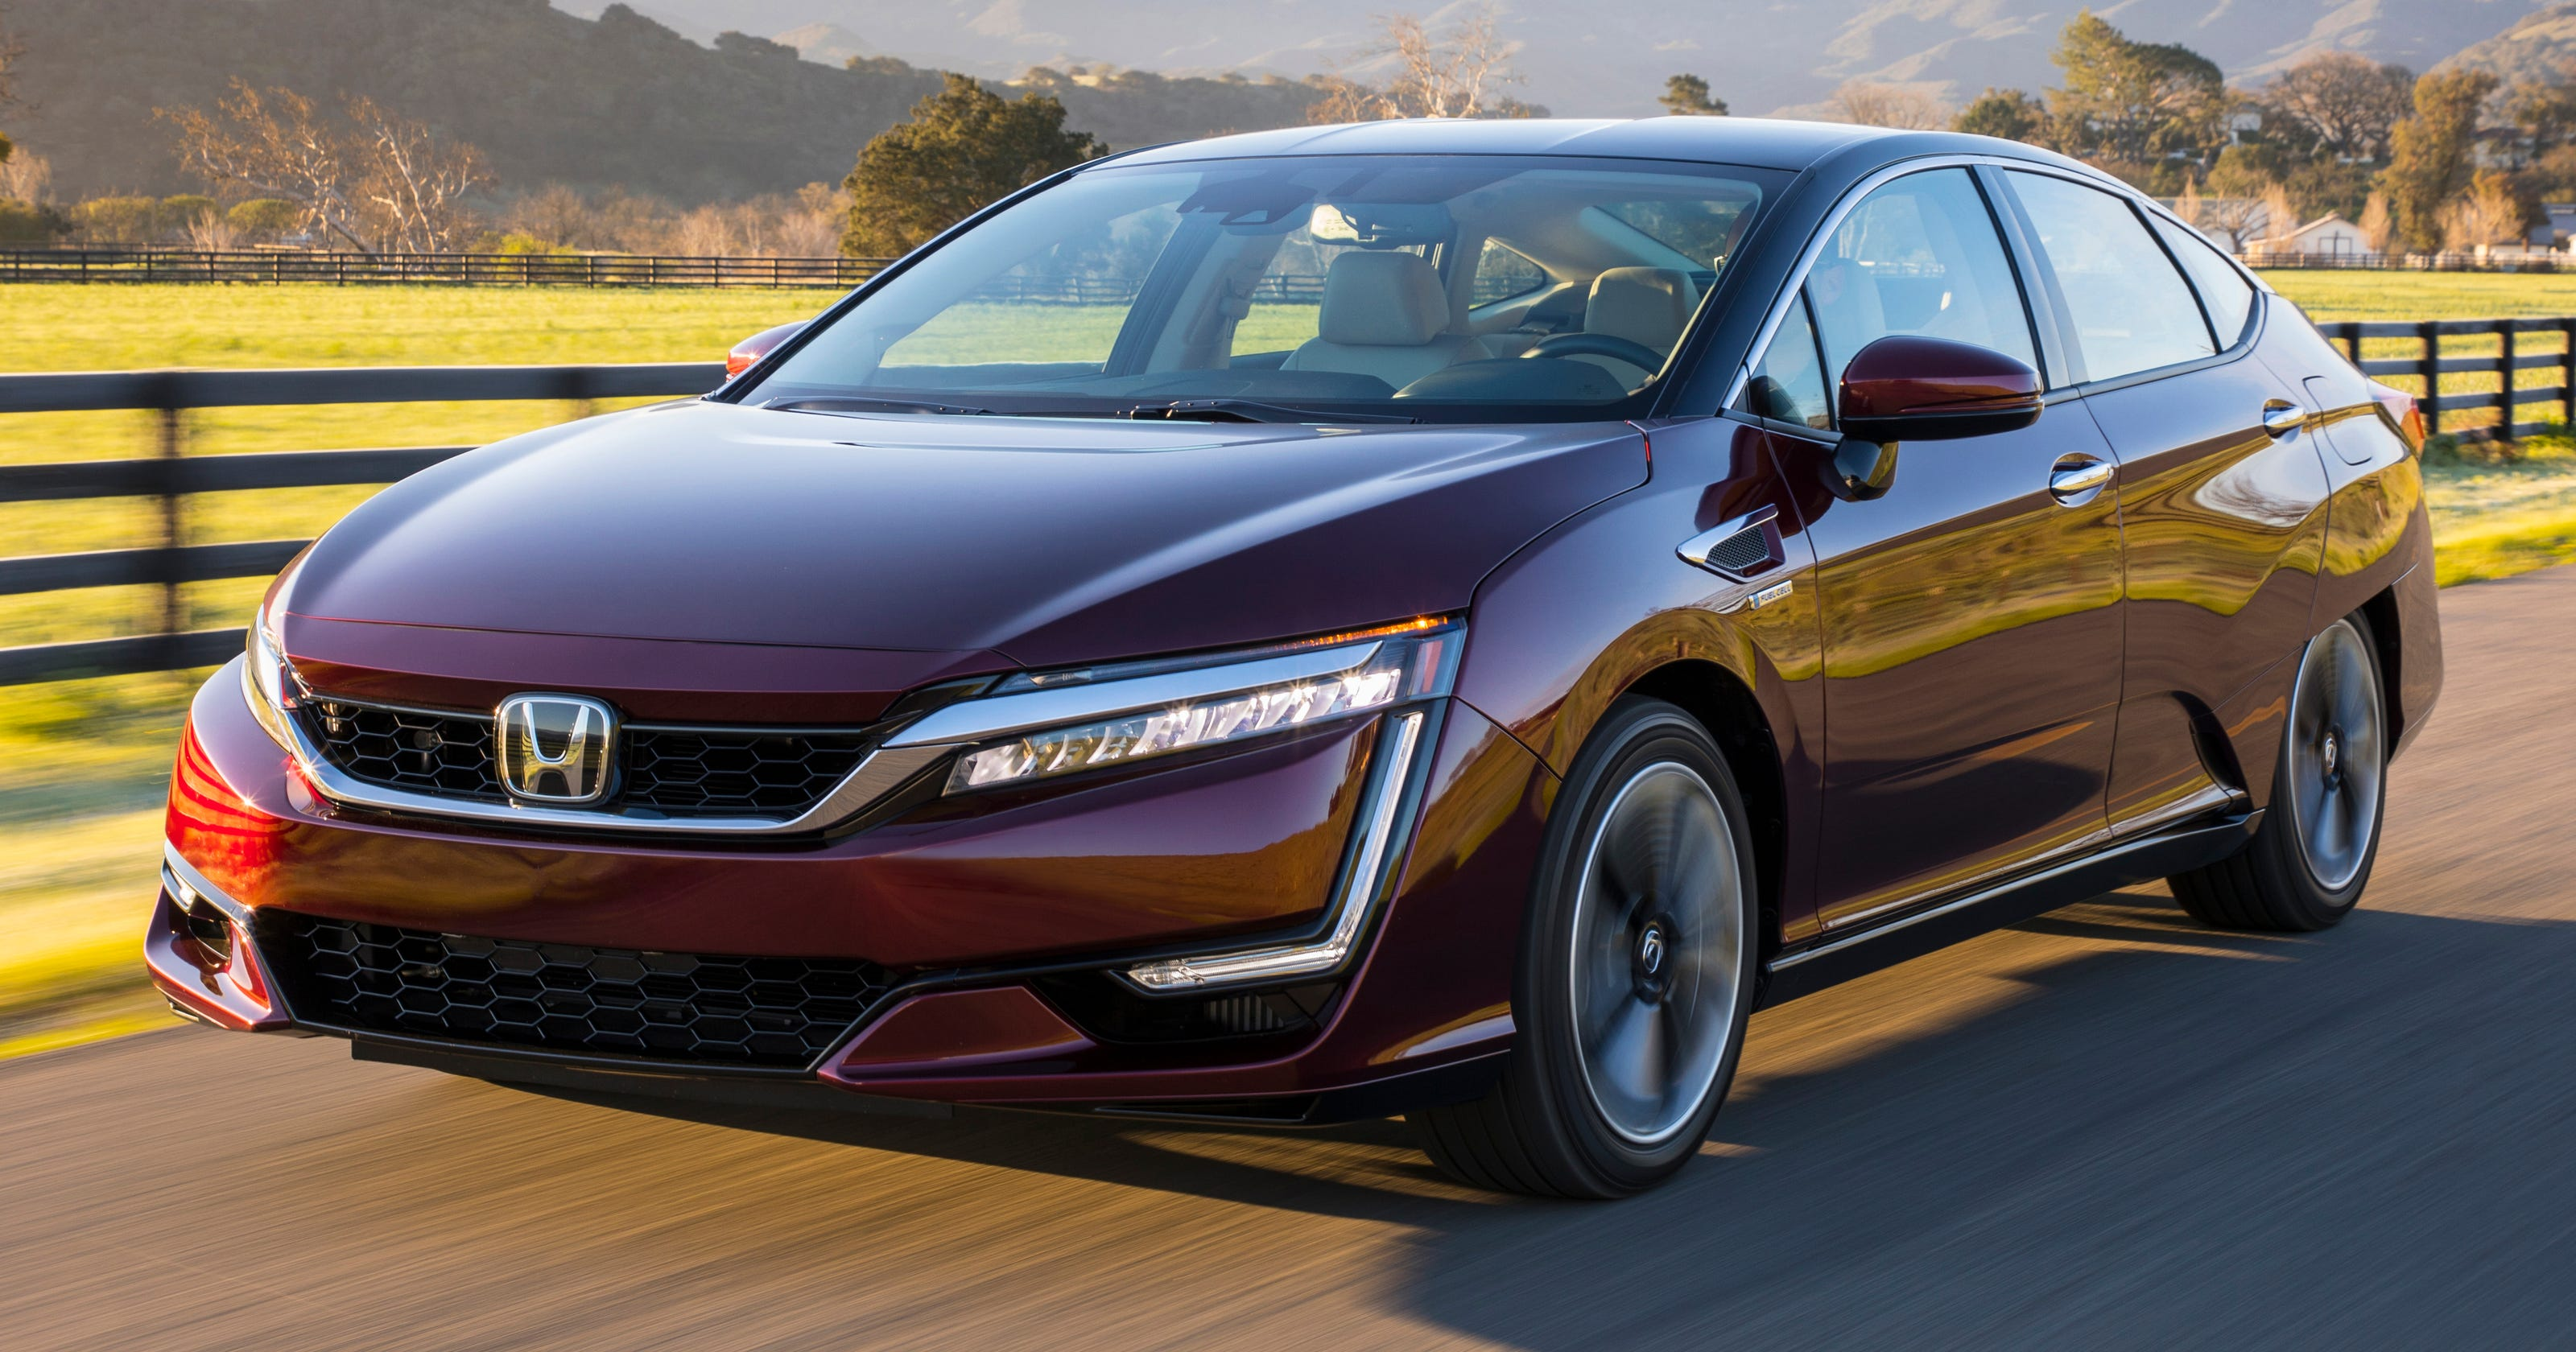 Review Honda Clarity Hydrogen Car Won T Go The Distance